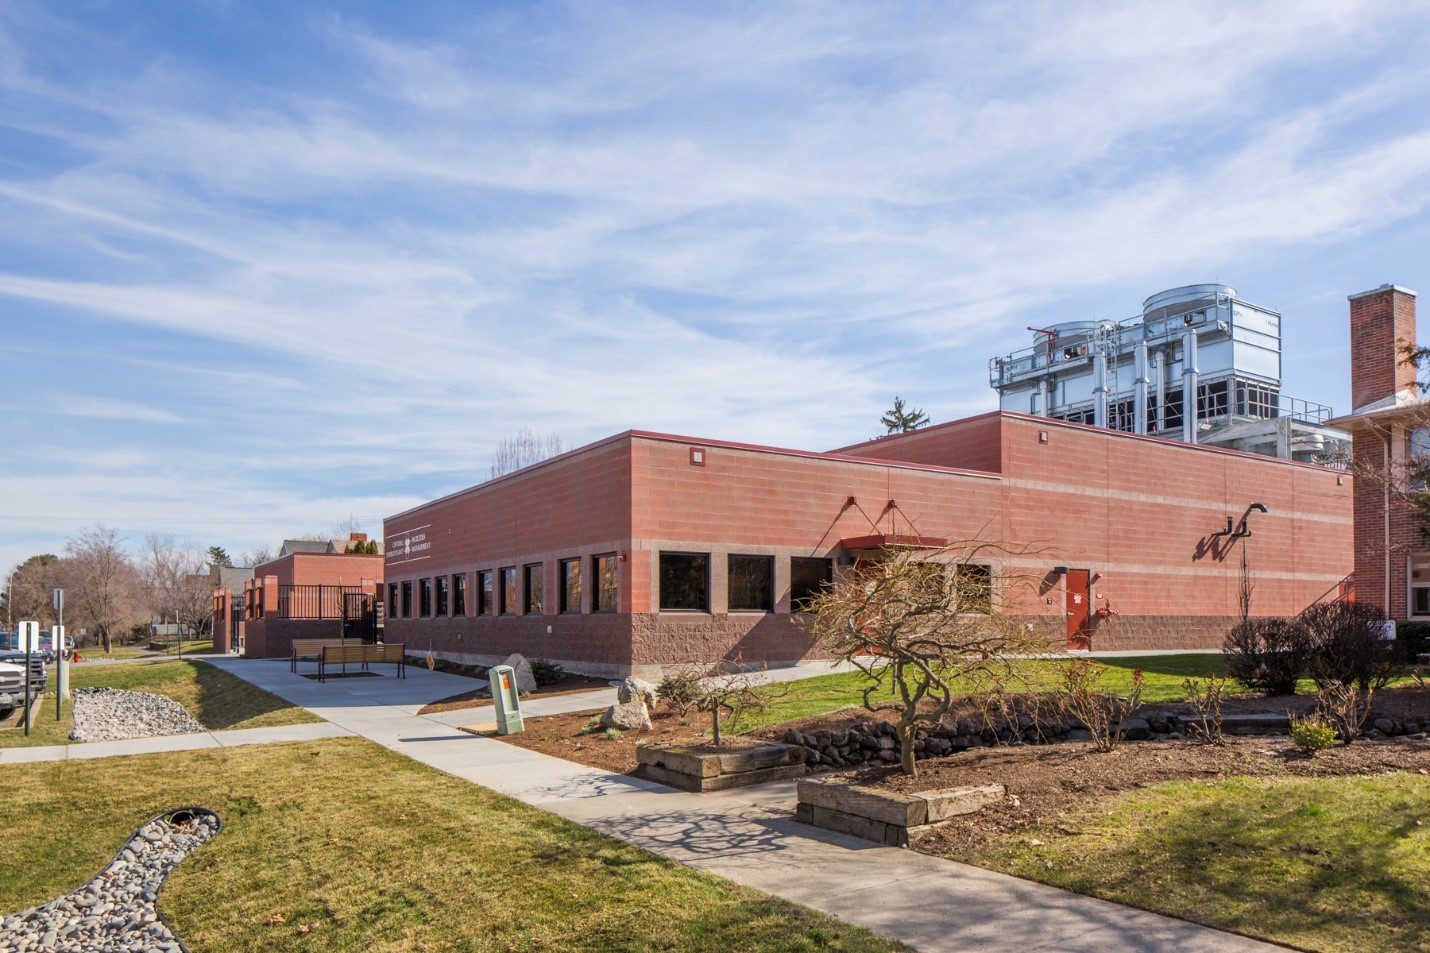 St. Joseph Regional Medical Center- Central Energy Plant